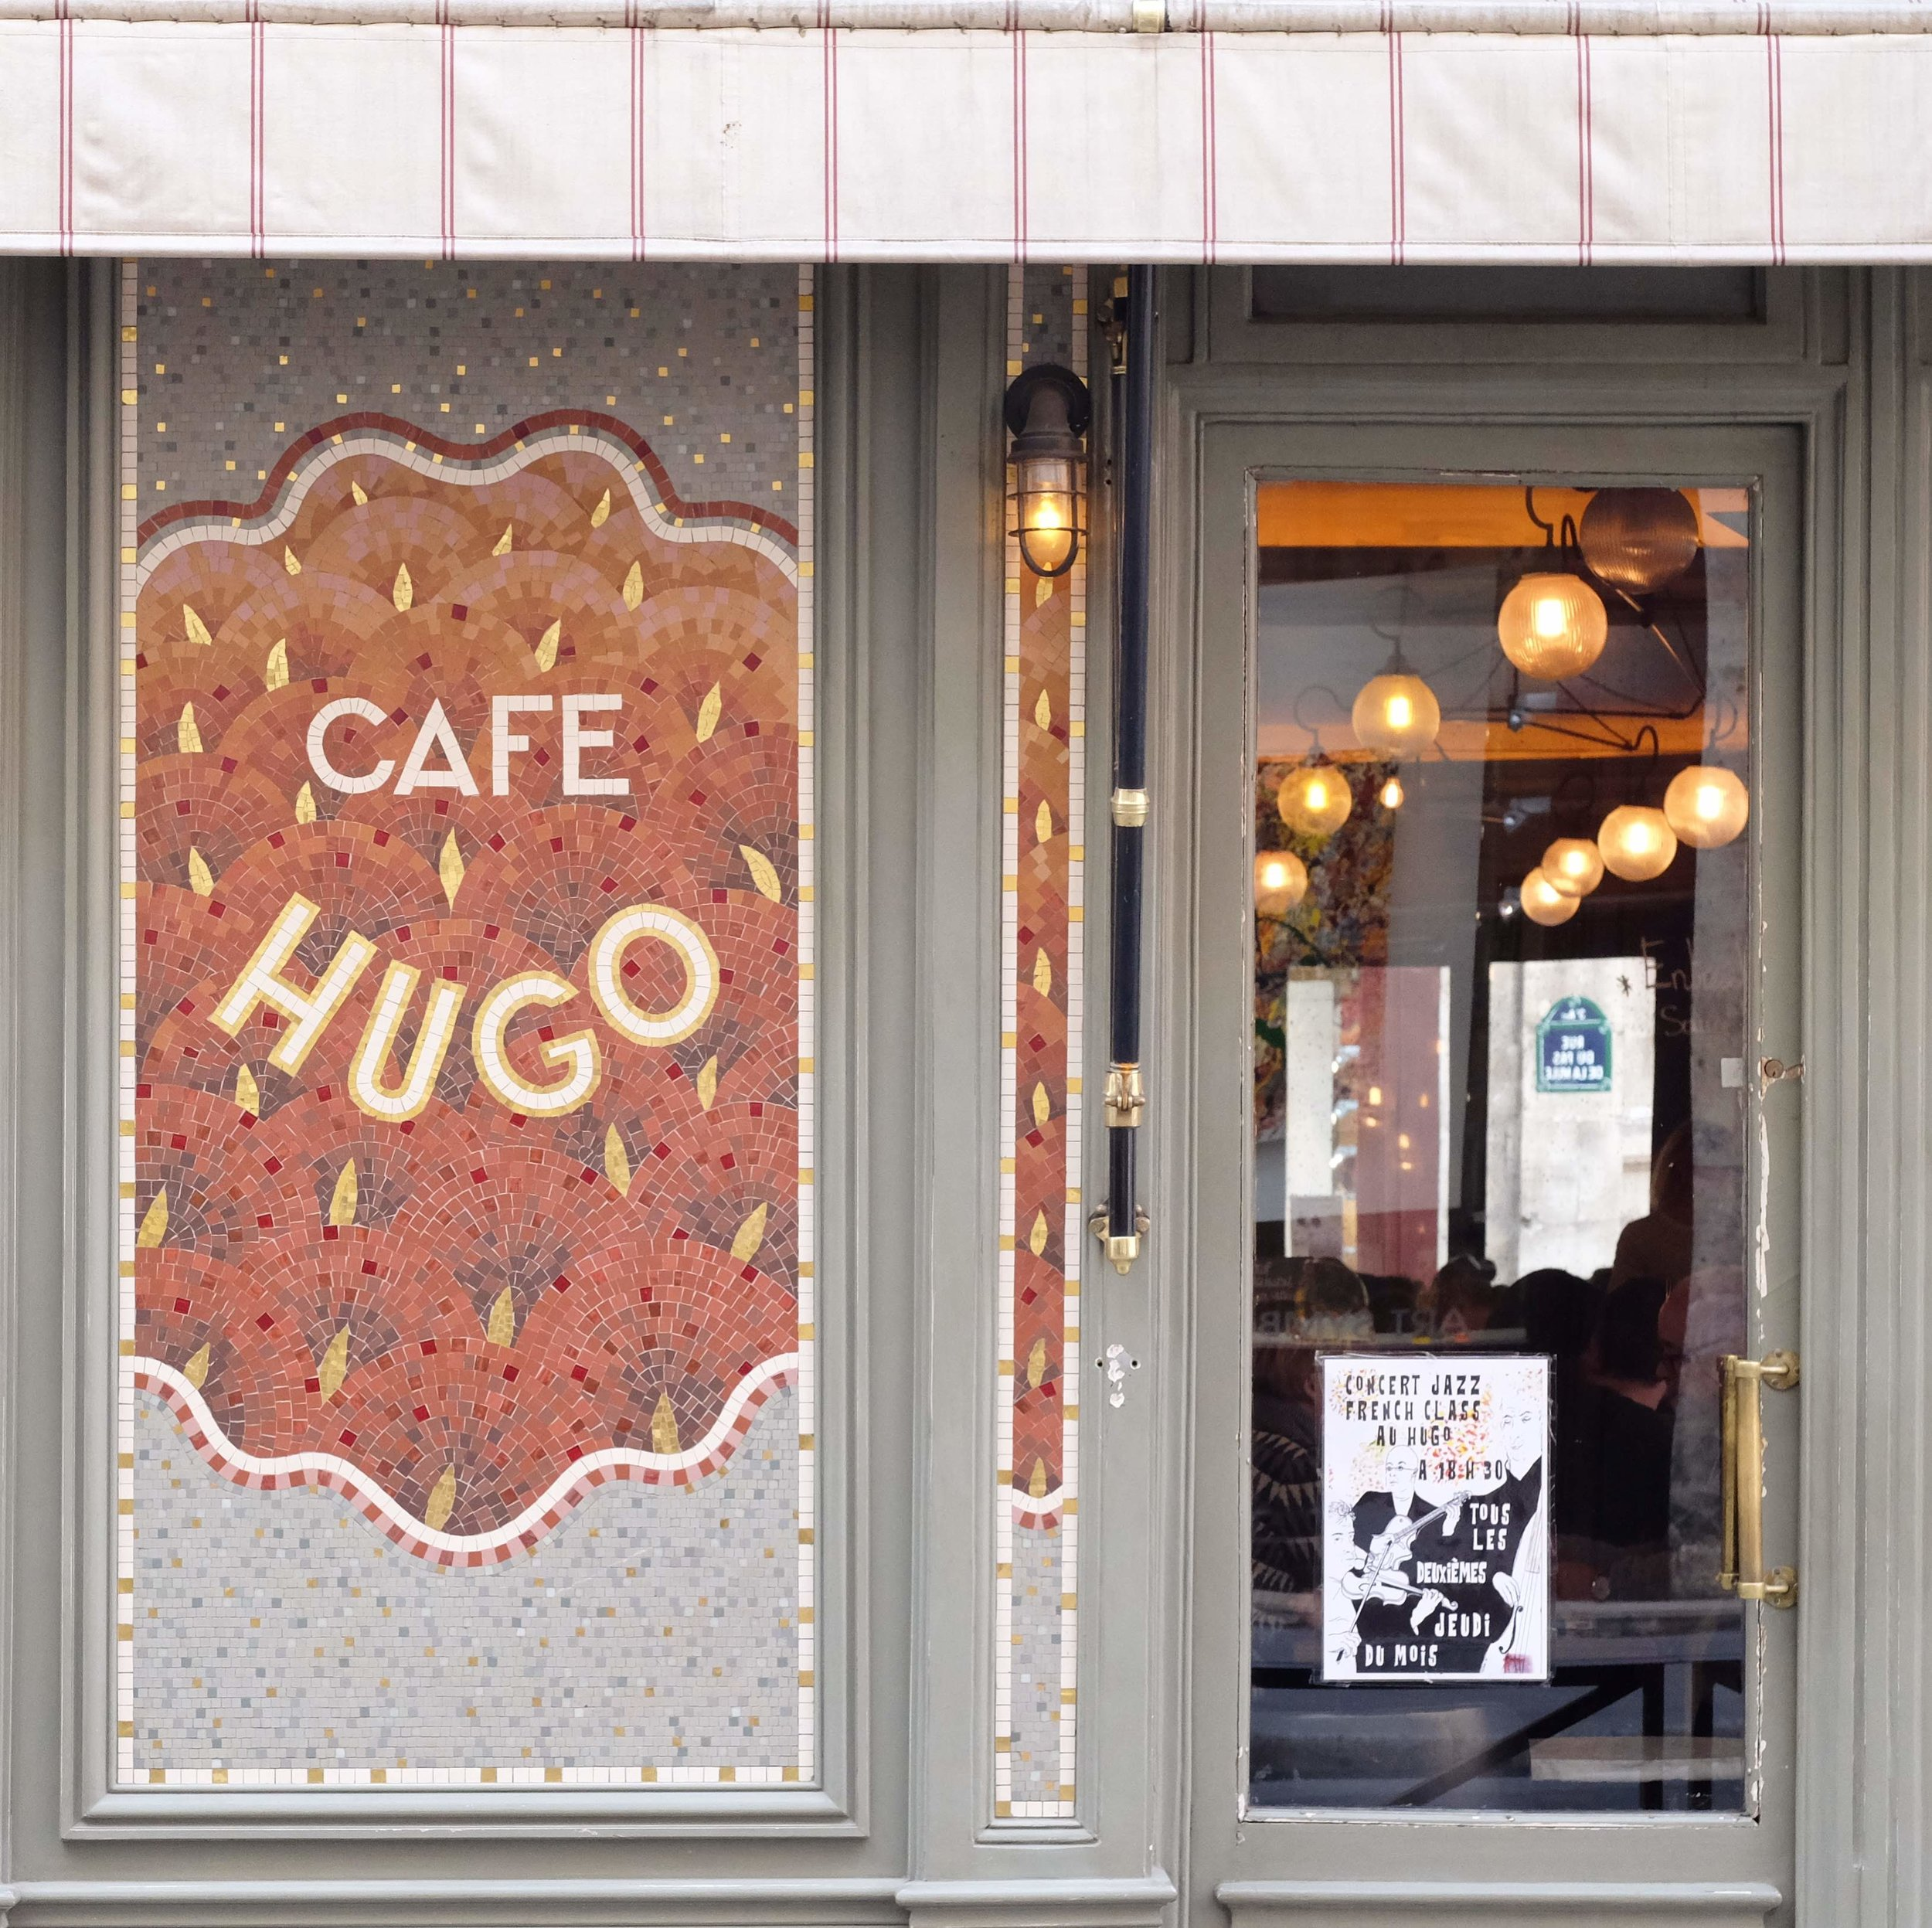 I had taken this on a previous visit to Paris, so attracted to Café Hugo's exterior. I'm glad I finally got to enjoy a meal here!